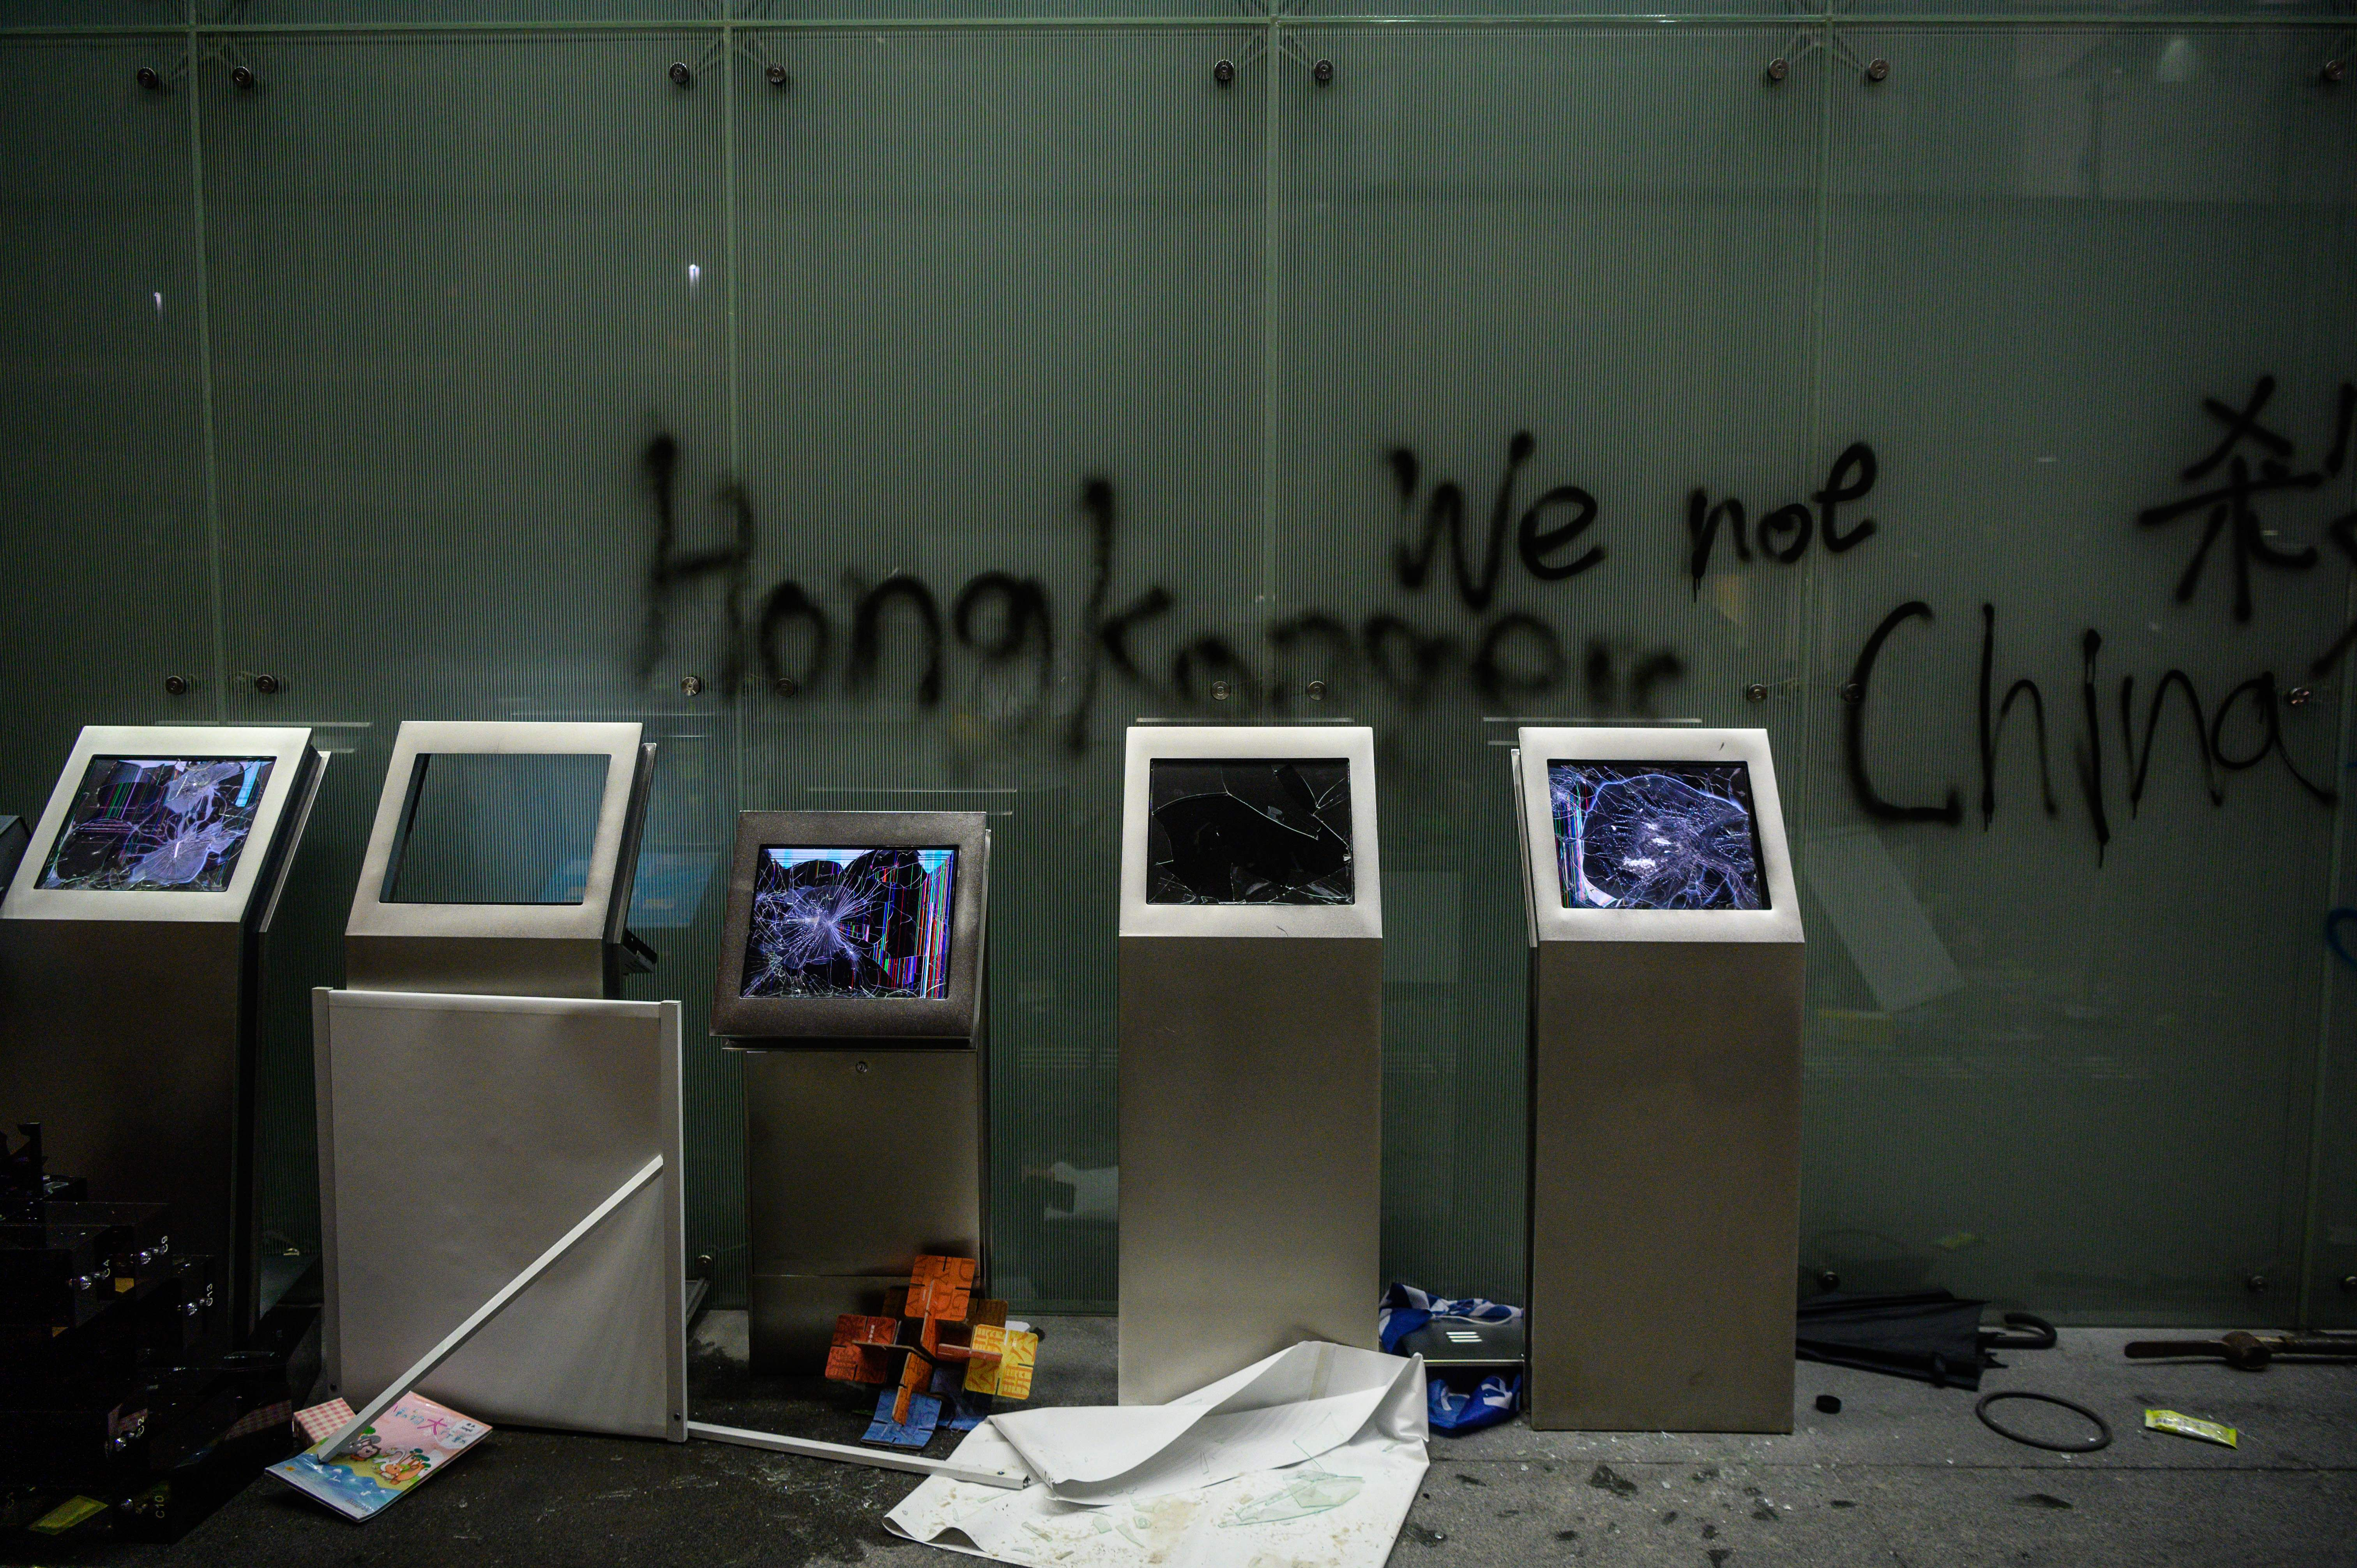 Smashed monitors and graffiti are seen after protesters stormed the government headquarters hours before in Hong Kong early on July 2, 2019. - Hong Kong police fired tear gas early on July 2 to regain control of the city's parliament after thousands of protesters occupied and ransacked the assembly in an unprecedented display of defiance on the anniversary of the territory's handover to China. (ANTHONY WALLACE/AFP/Getty Images)